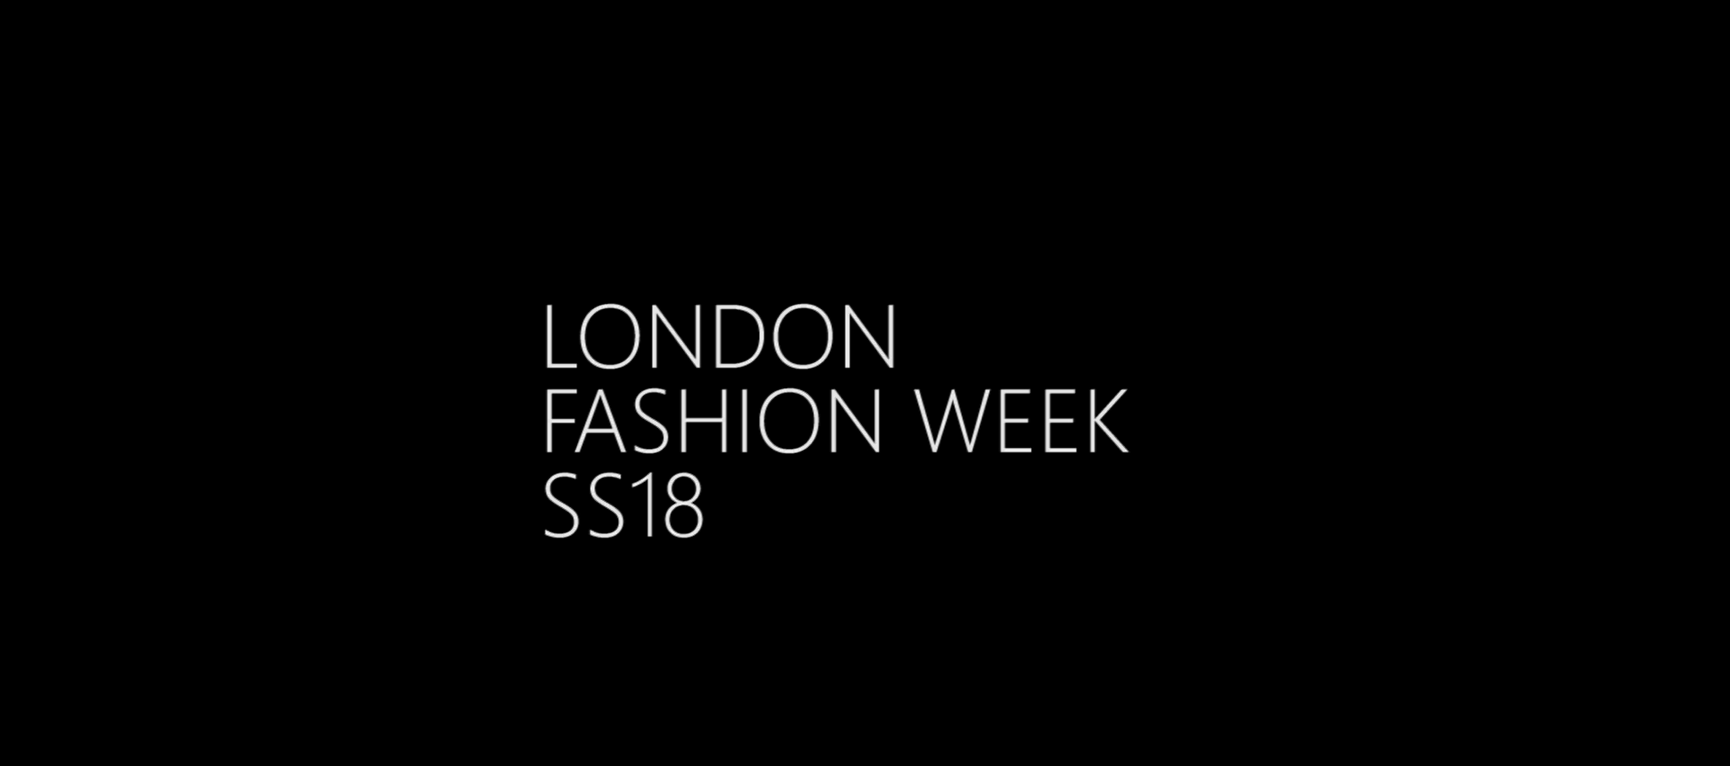 LONDON FASHION WEEK SS18